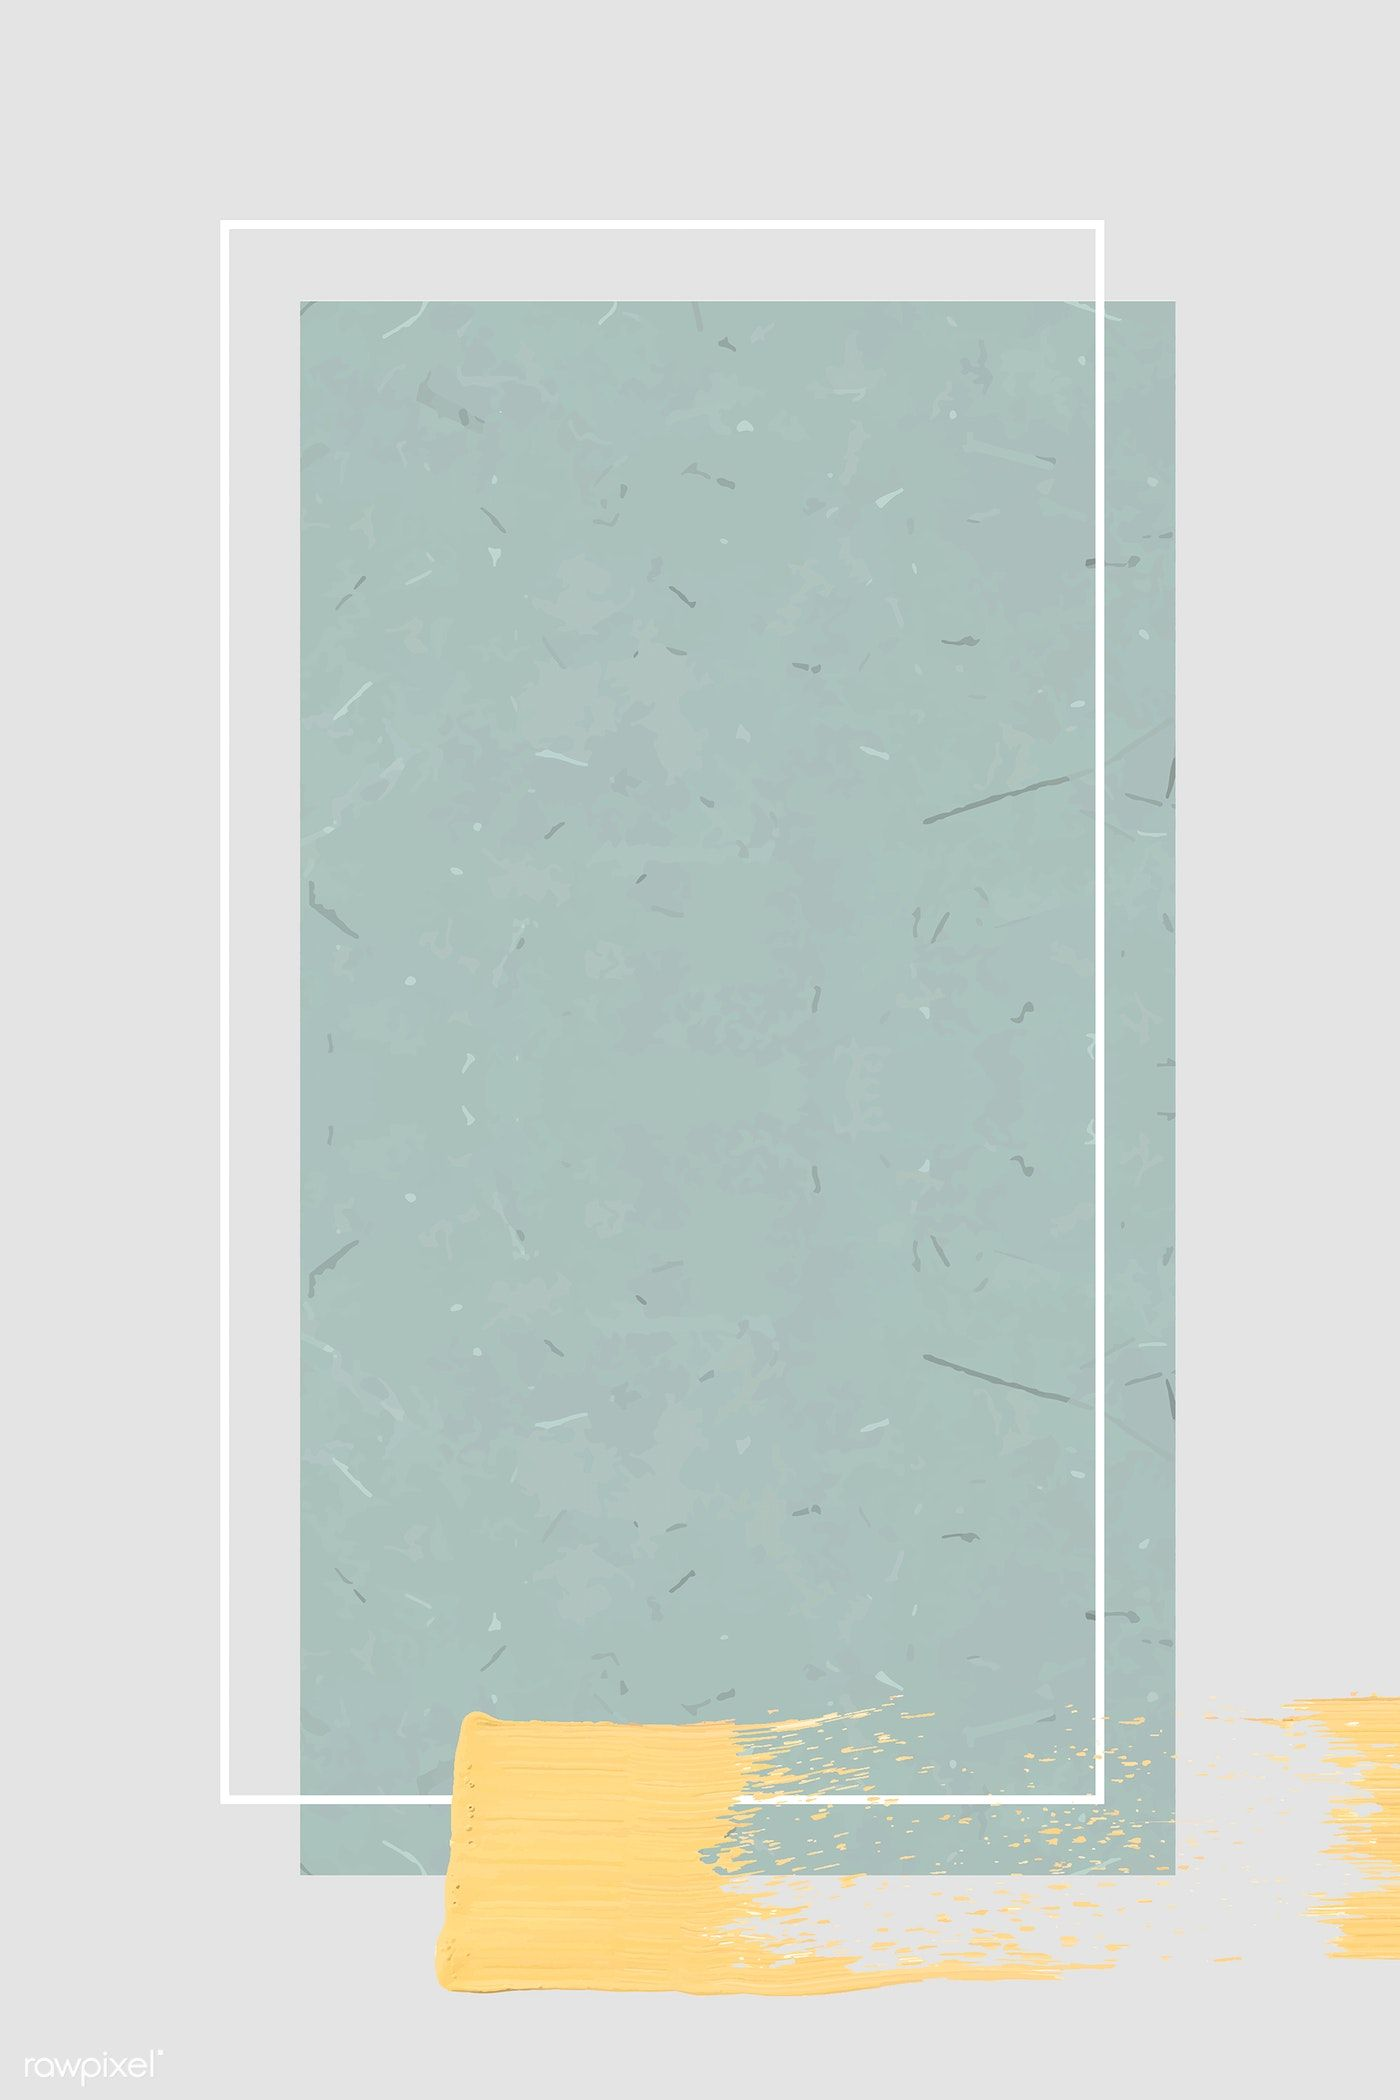 Download premium vector of White frame with a yellow brushstroke on cyan